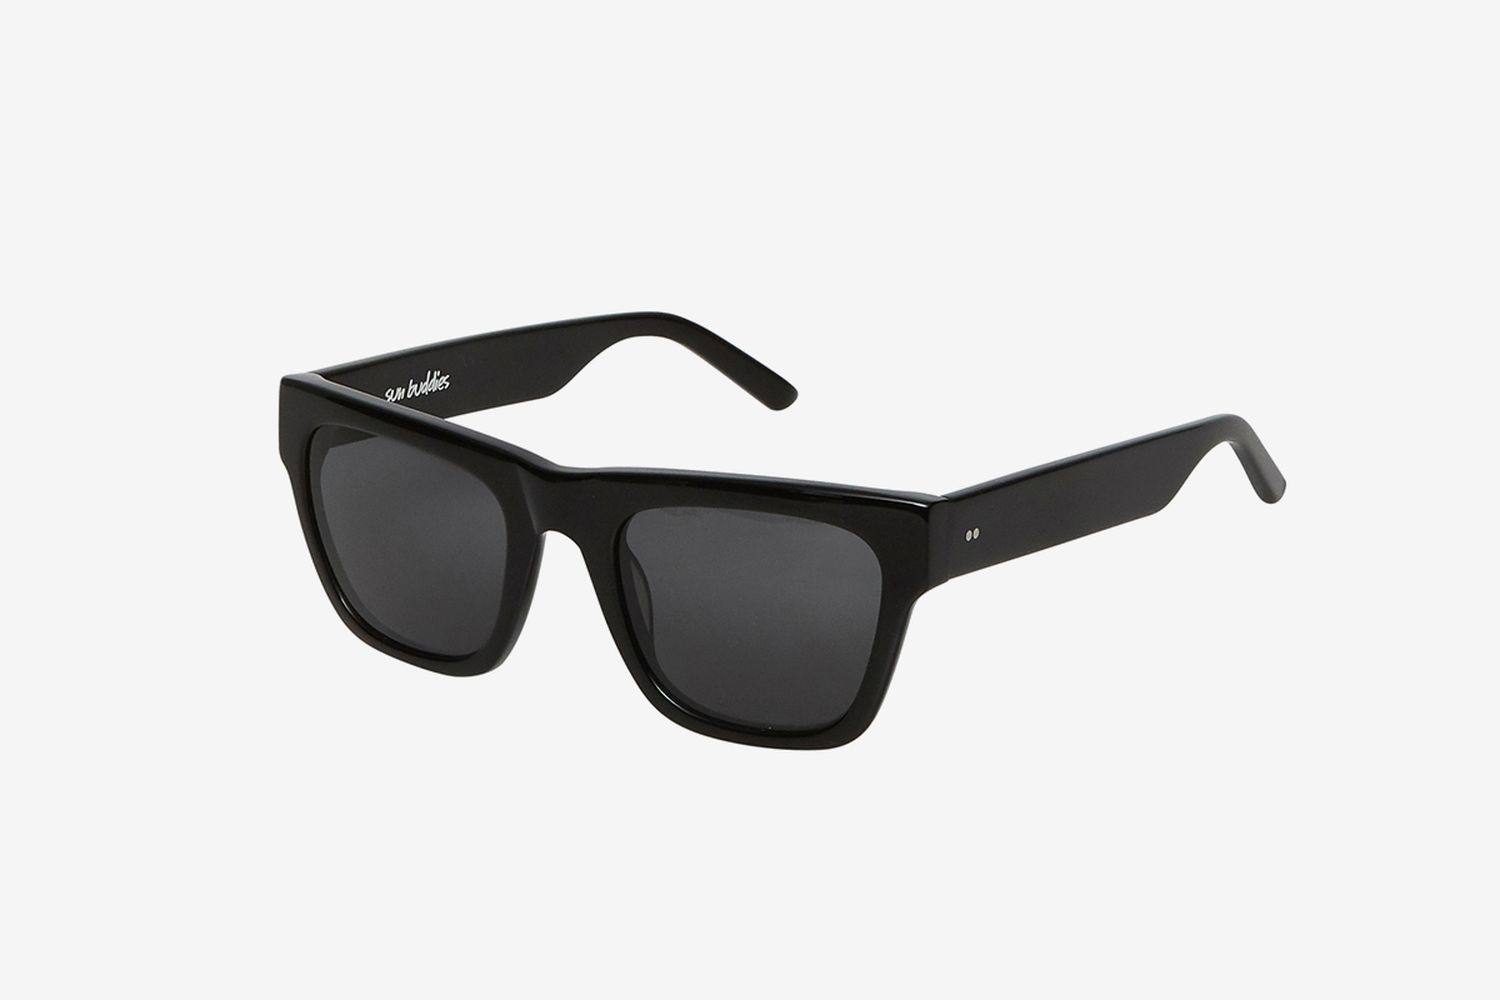 Sun Buddies Shane Sunglasses Black